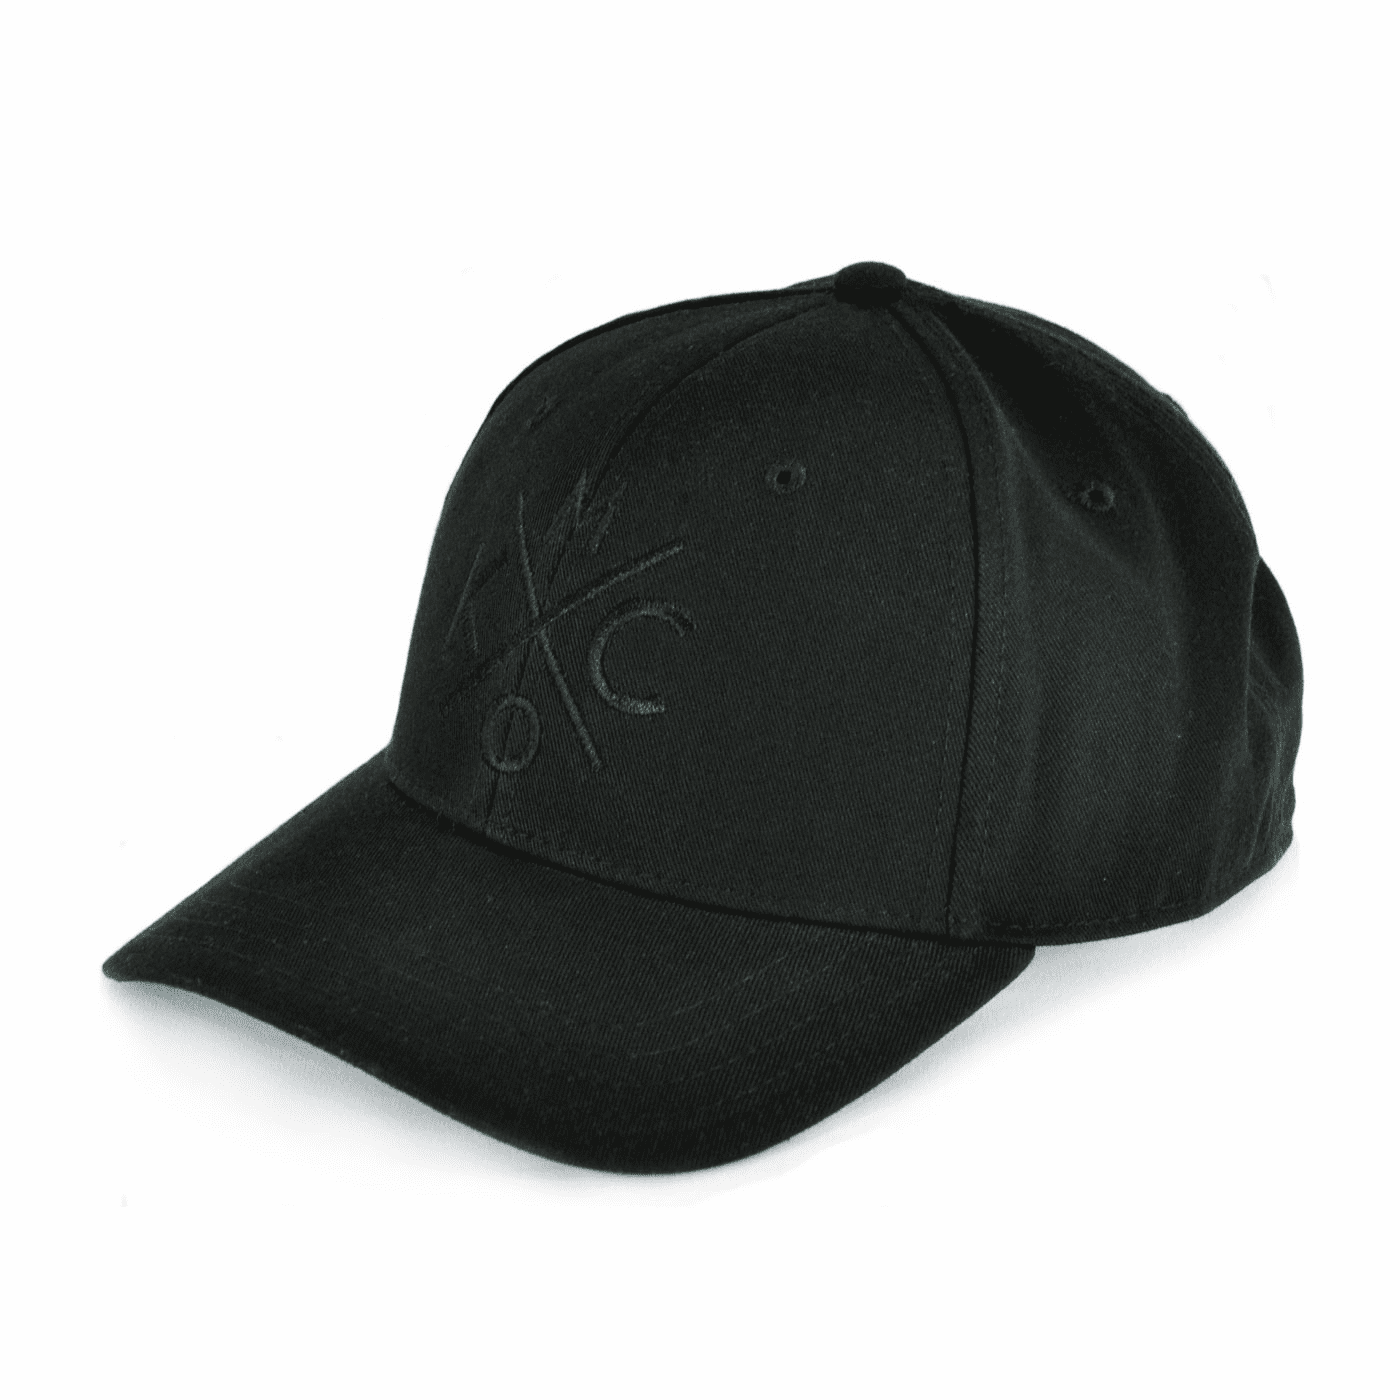 KCMO Black/Black Curved Bill Hat